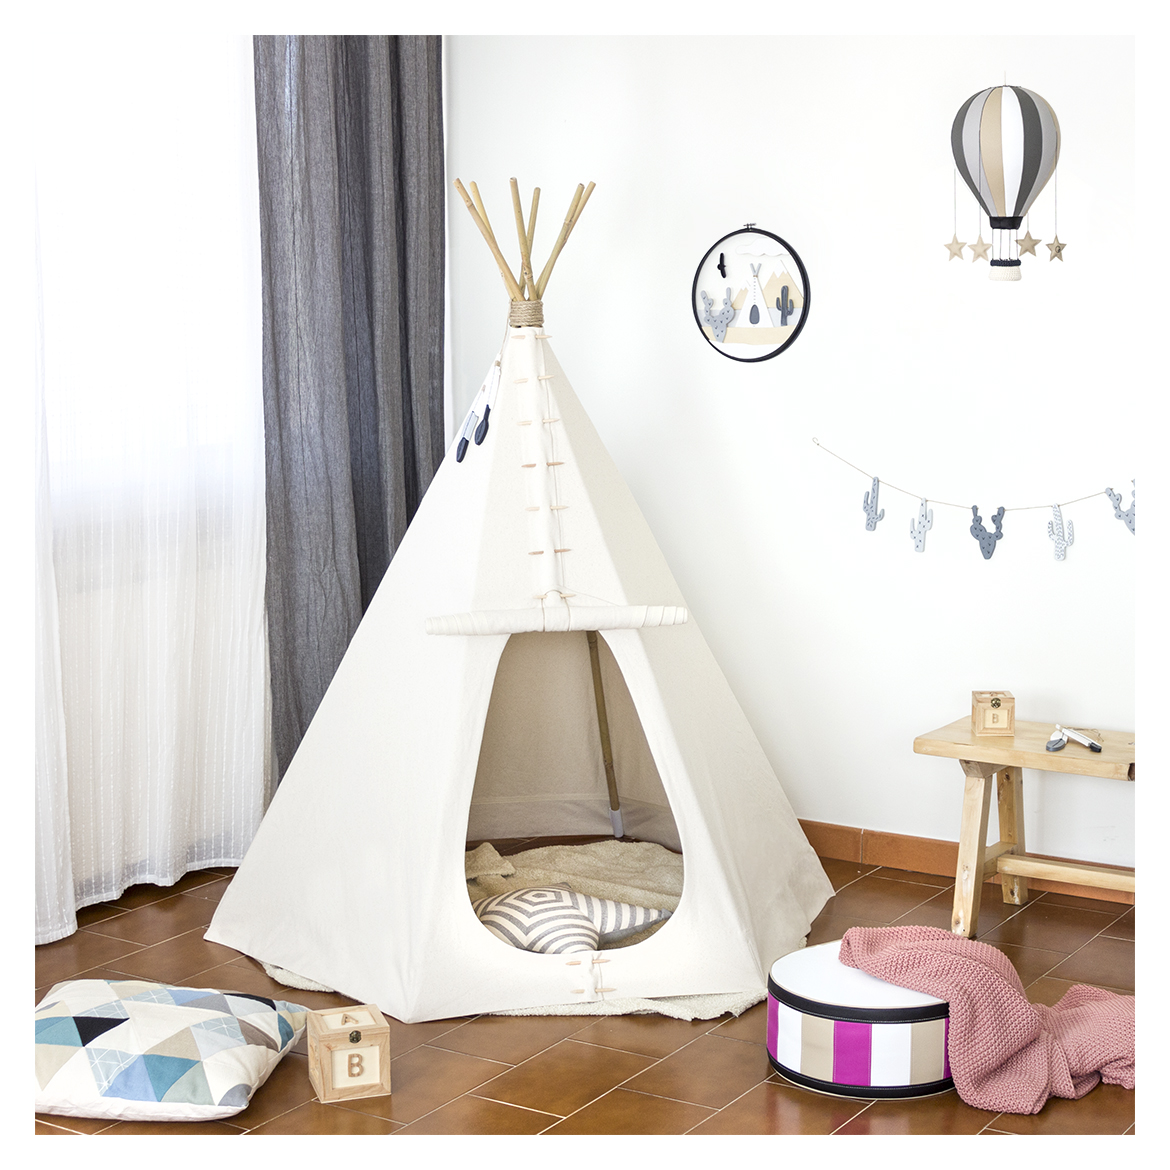 Jo handmade design: The Teepee, indian tent for children, made by me ...